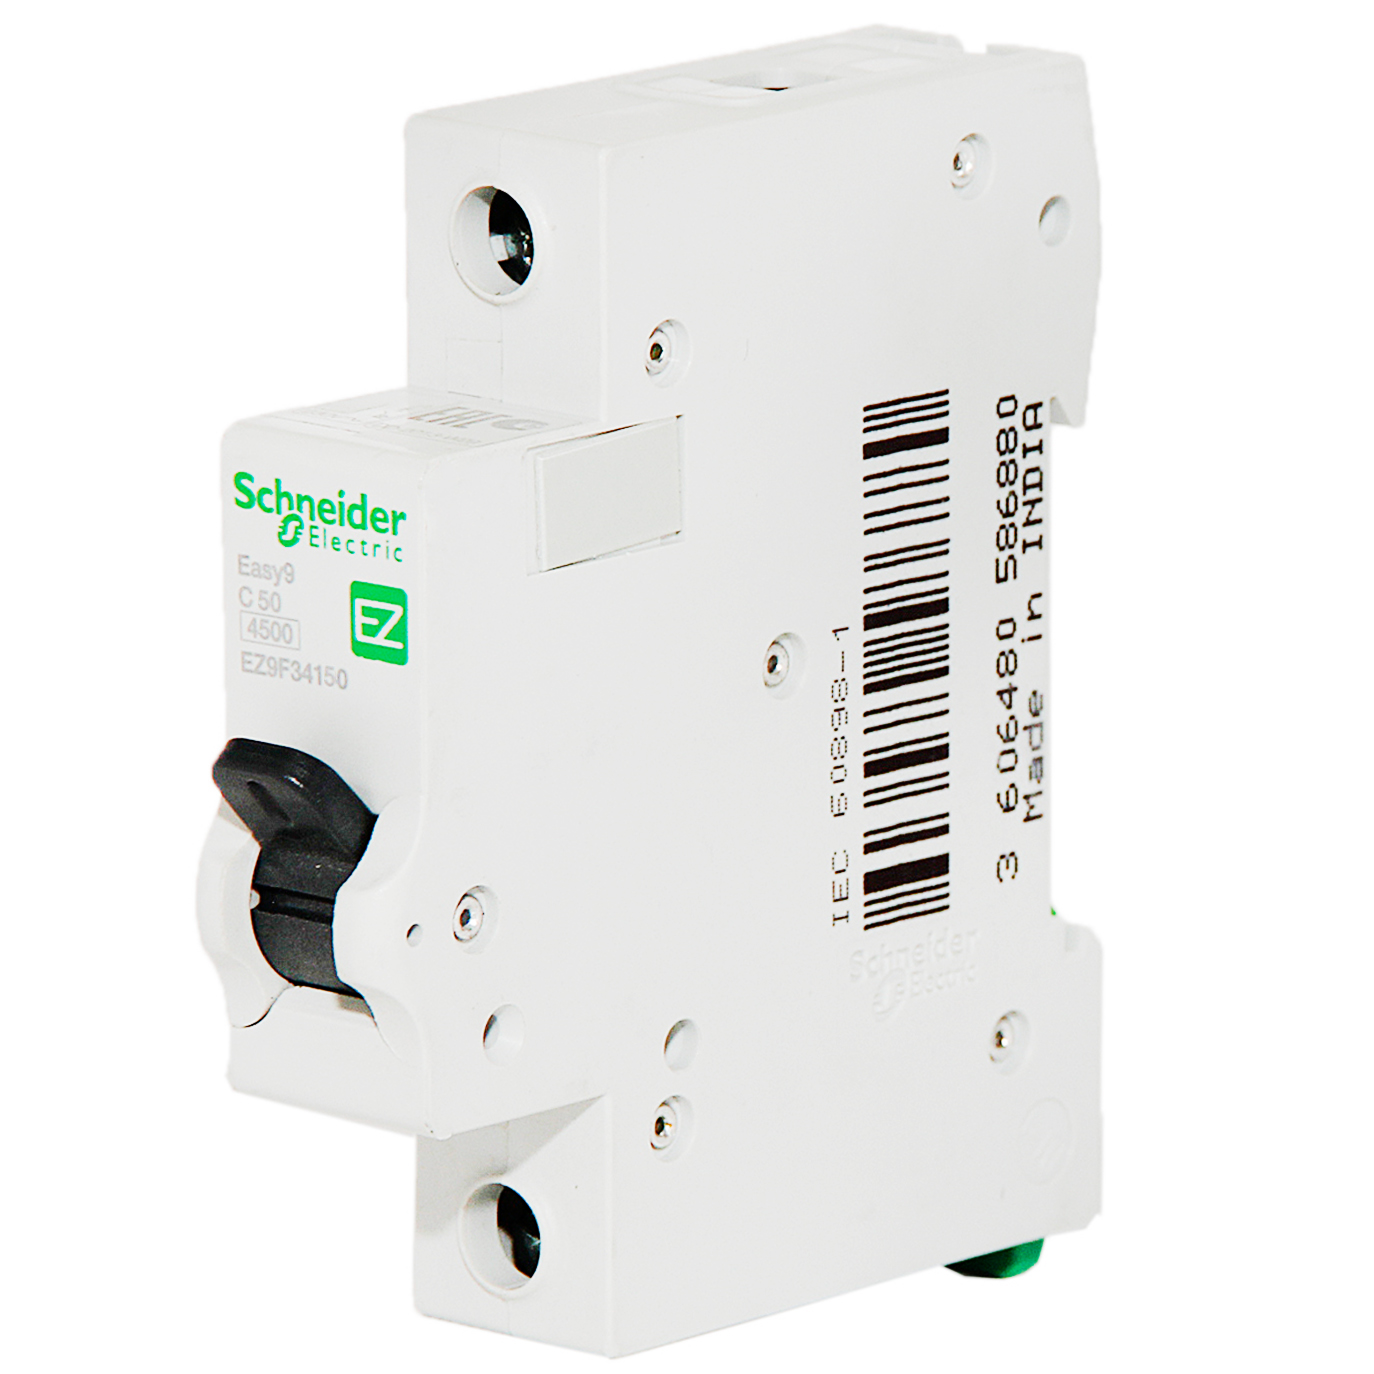 �������������� ����������� Schneider Electric Easy9 1P 50A ���-�� C 4,5�� EZ9F34150